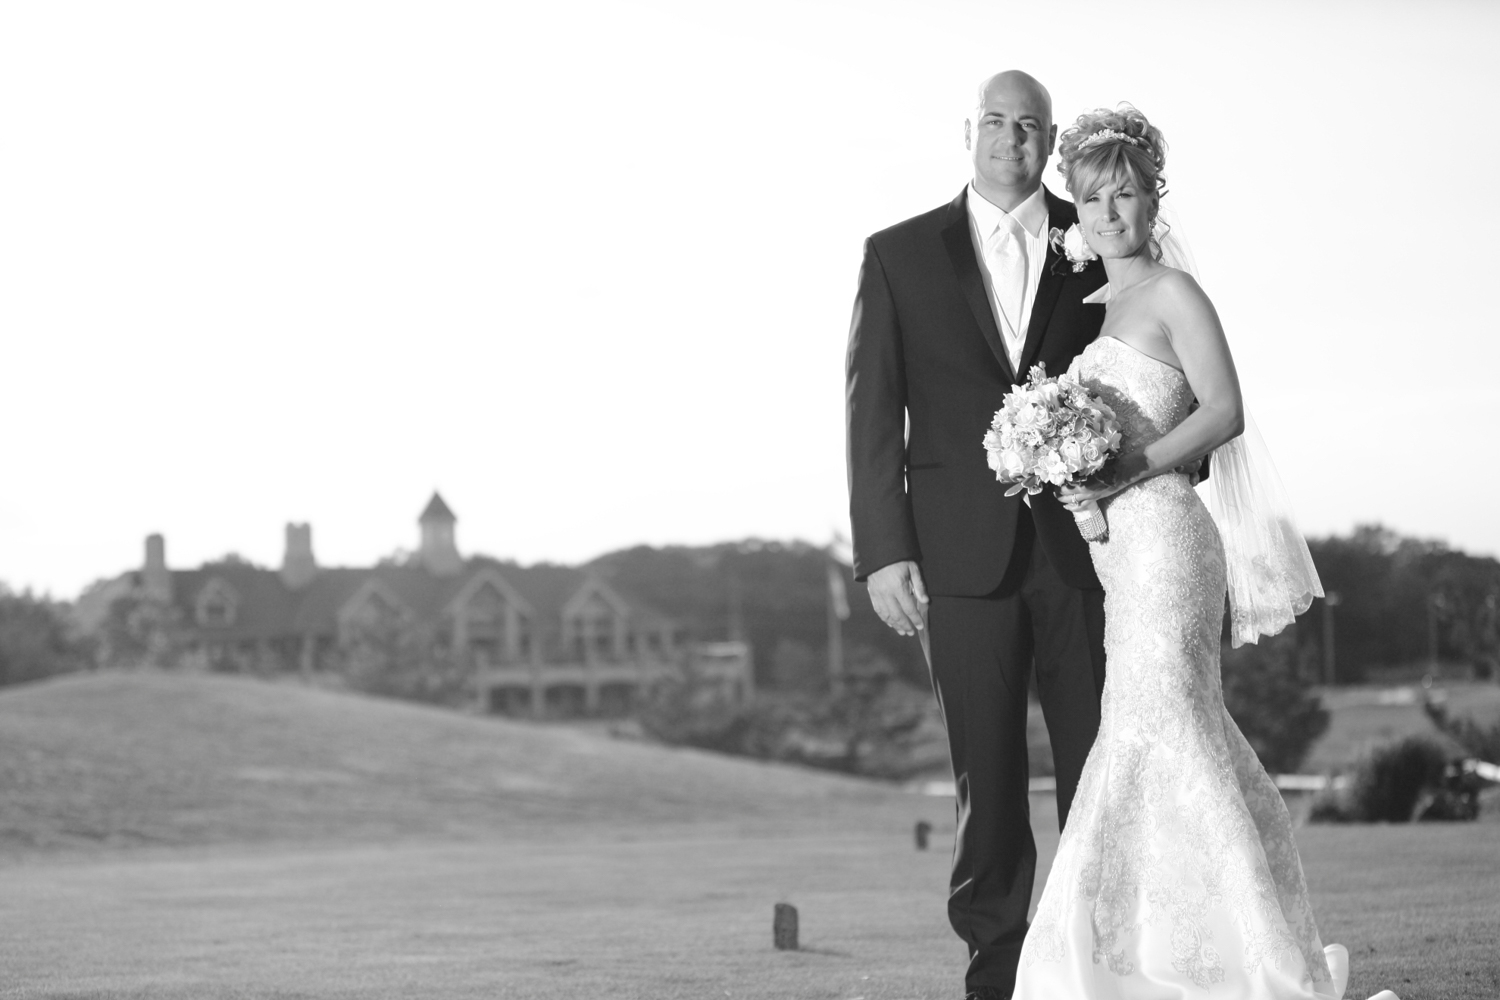 Wedding+Photos+Scotland+Run+Golf+Course+Williamstown+NJ04.jpg